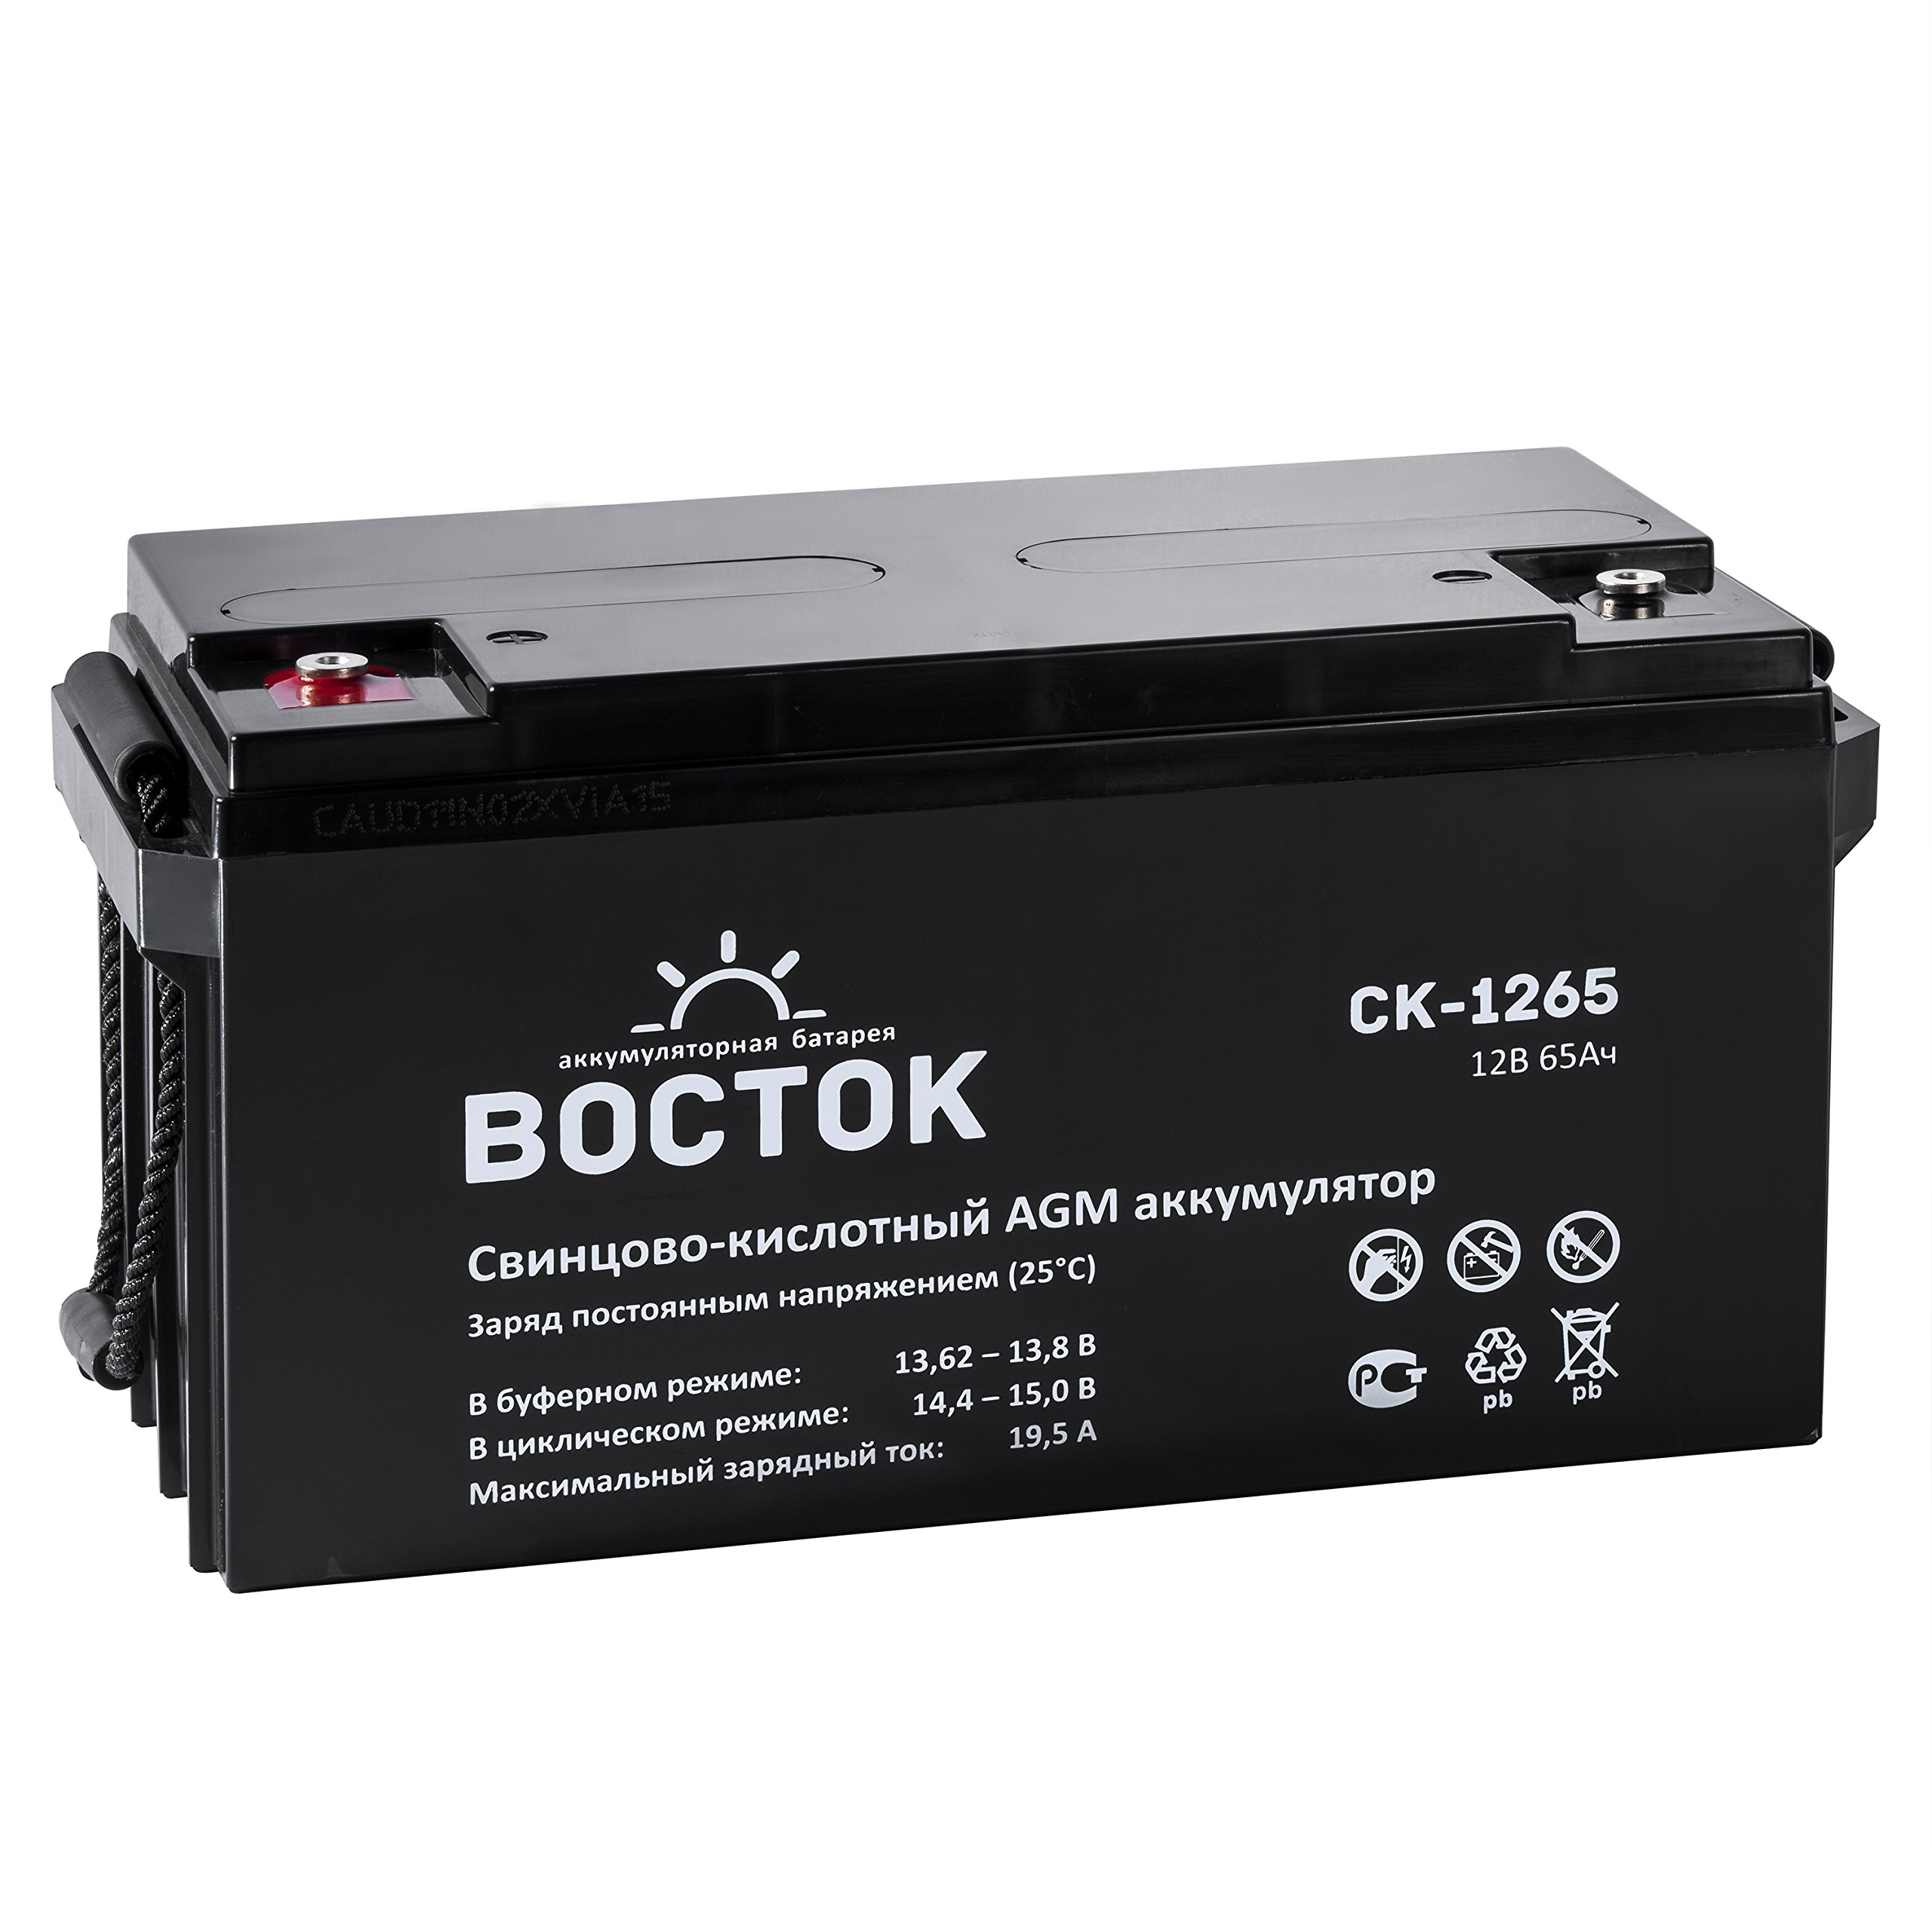 Bockok 12V 65 Amp NP12 65Ah Rechargeable Lead Acid Battery With Button Style Terminals